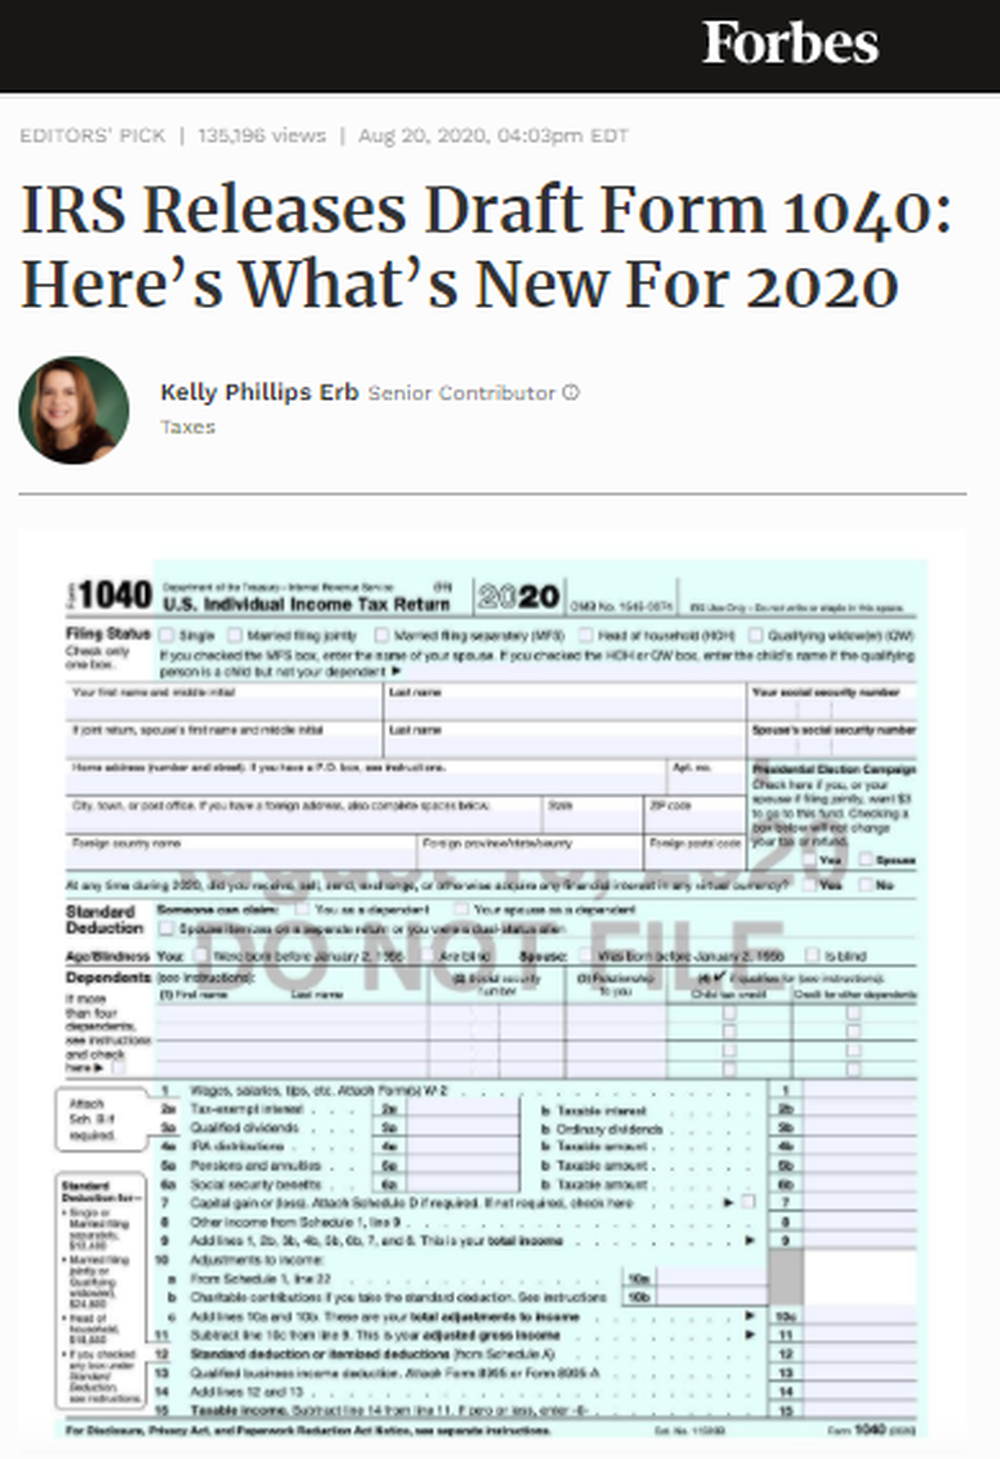 IRS-Releases-Draft-Form-1040-Here's-What's-New-For-2020.png